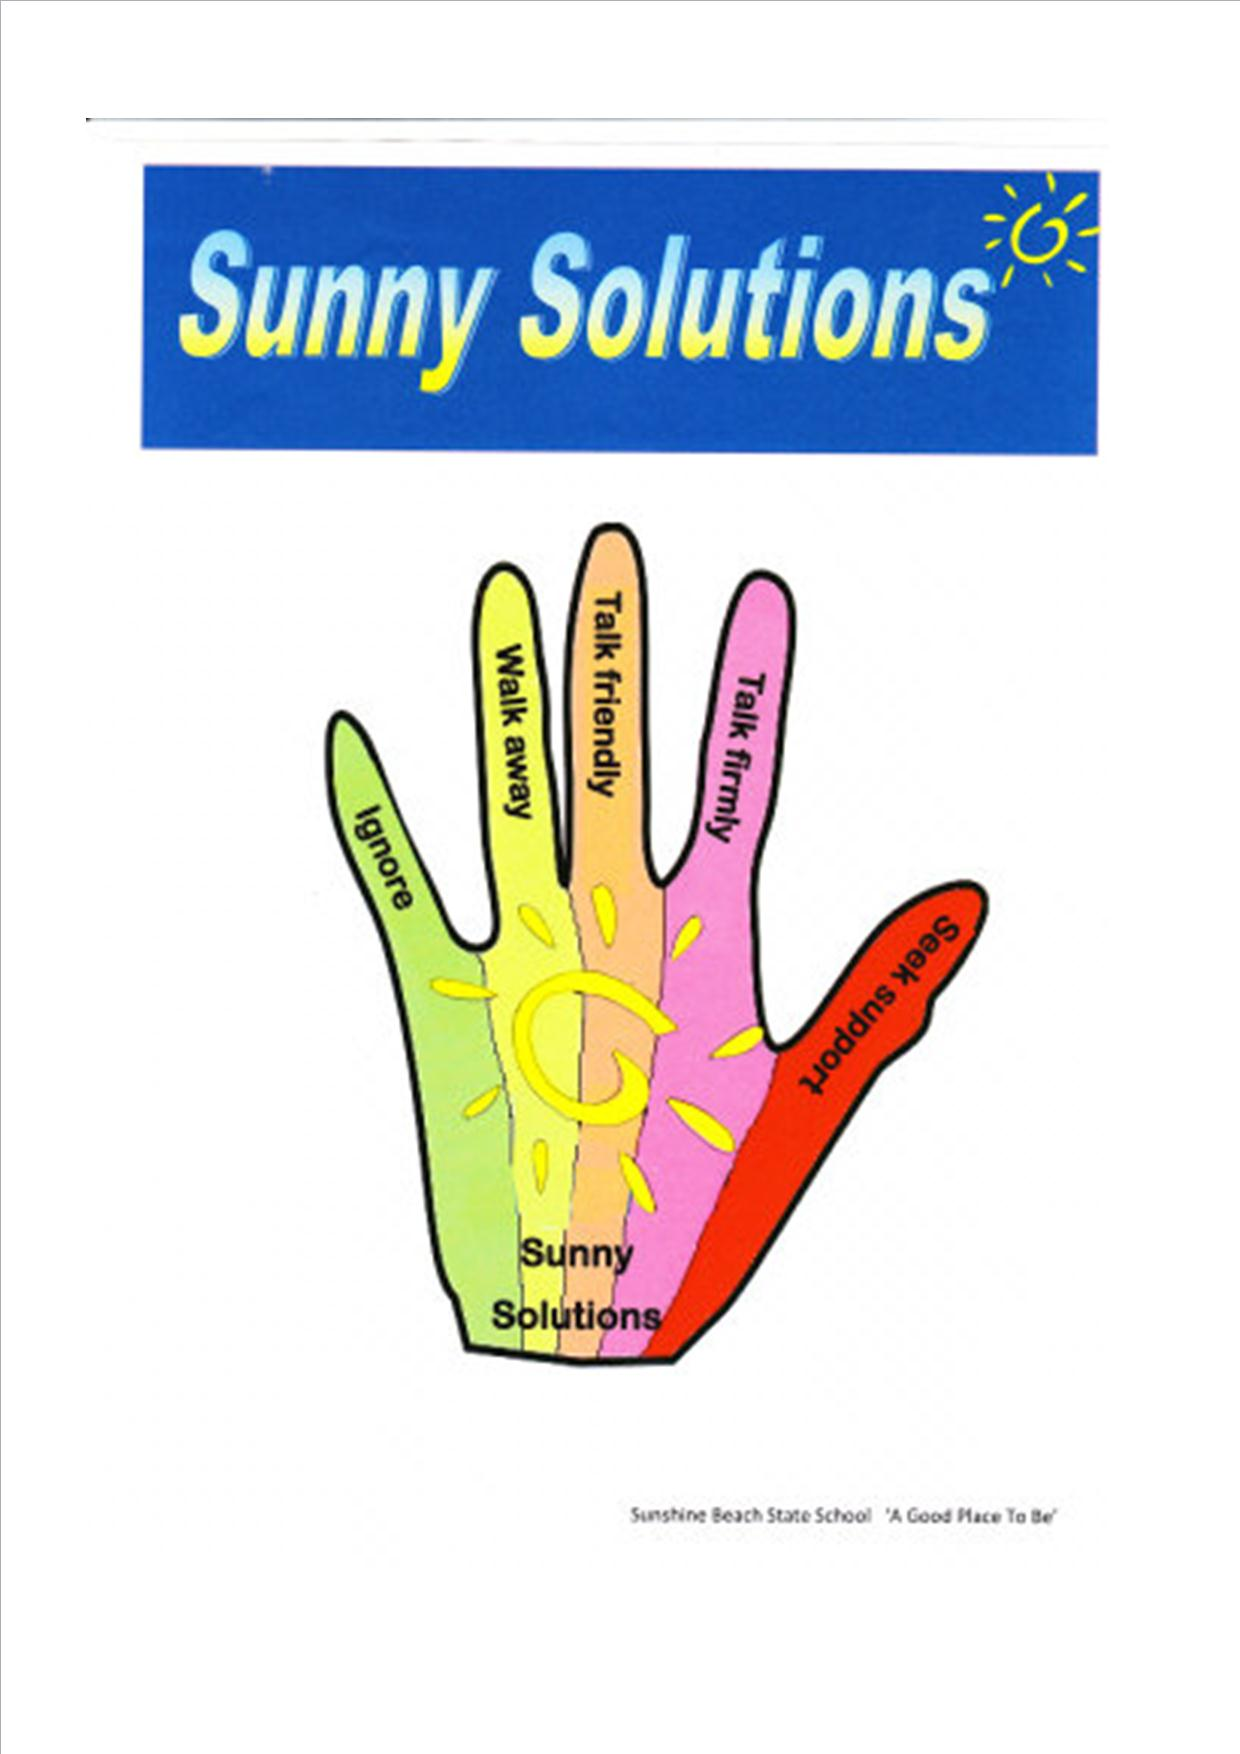 Sunny Solutions